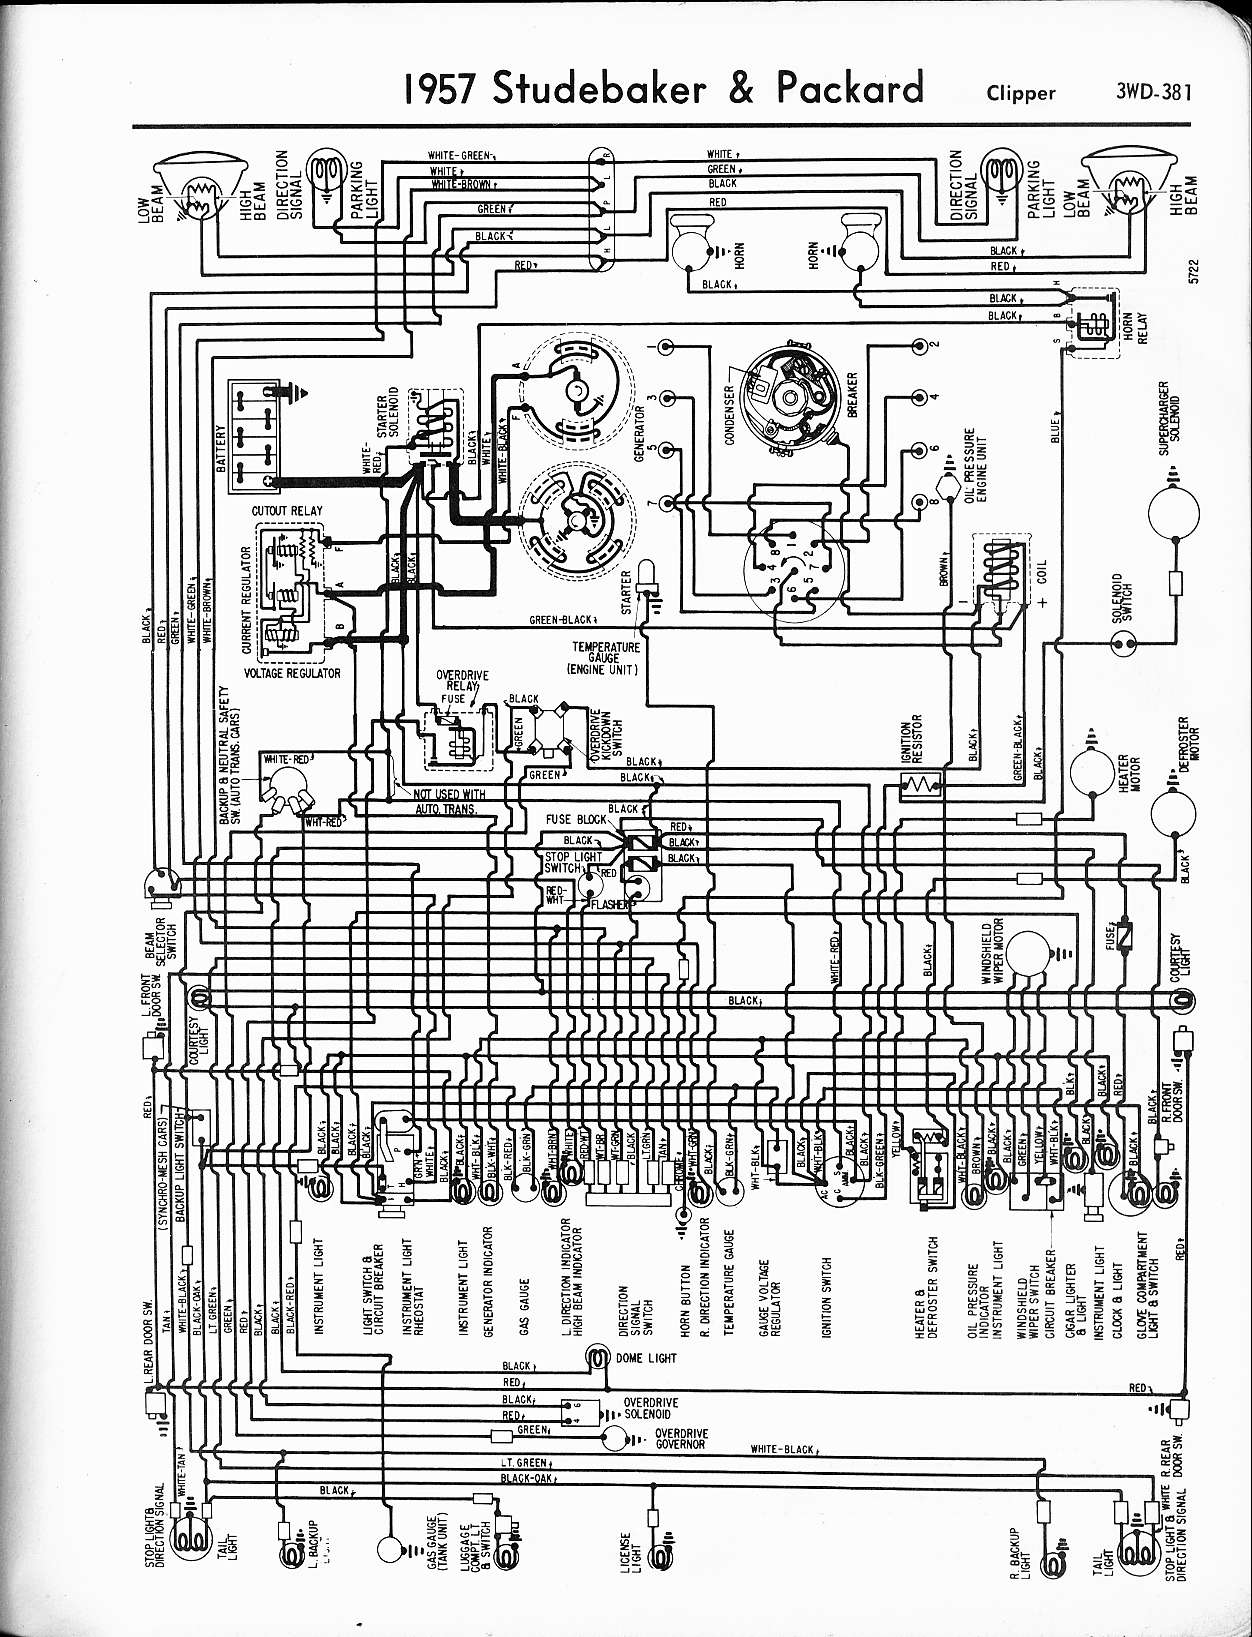 MWire5765 381 packard wiring diagrams the old car manual project studebaker wiring diagrams at n-0.co